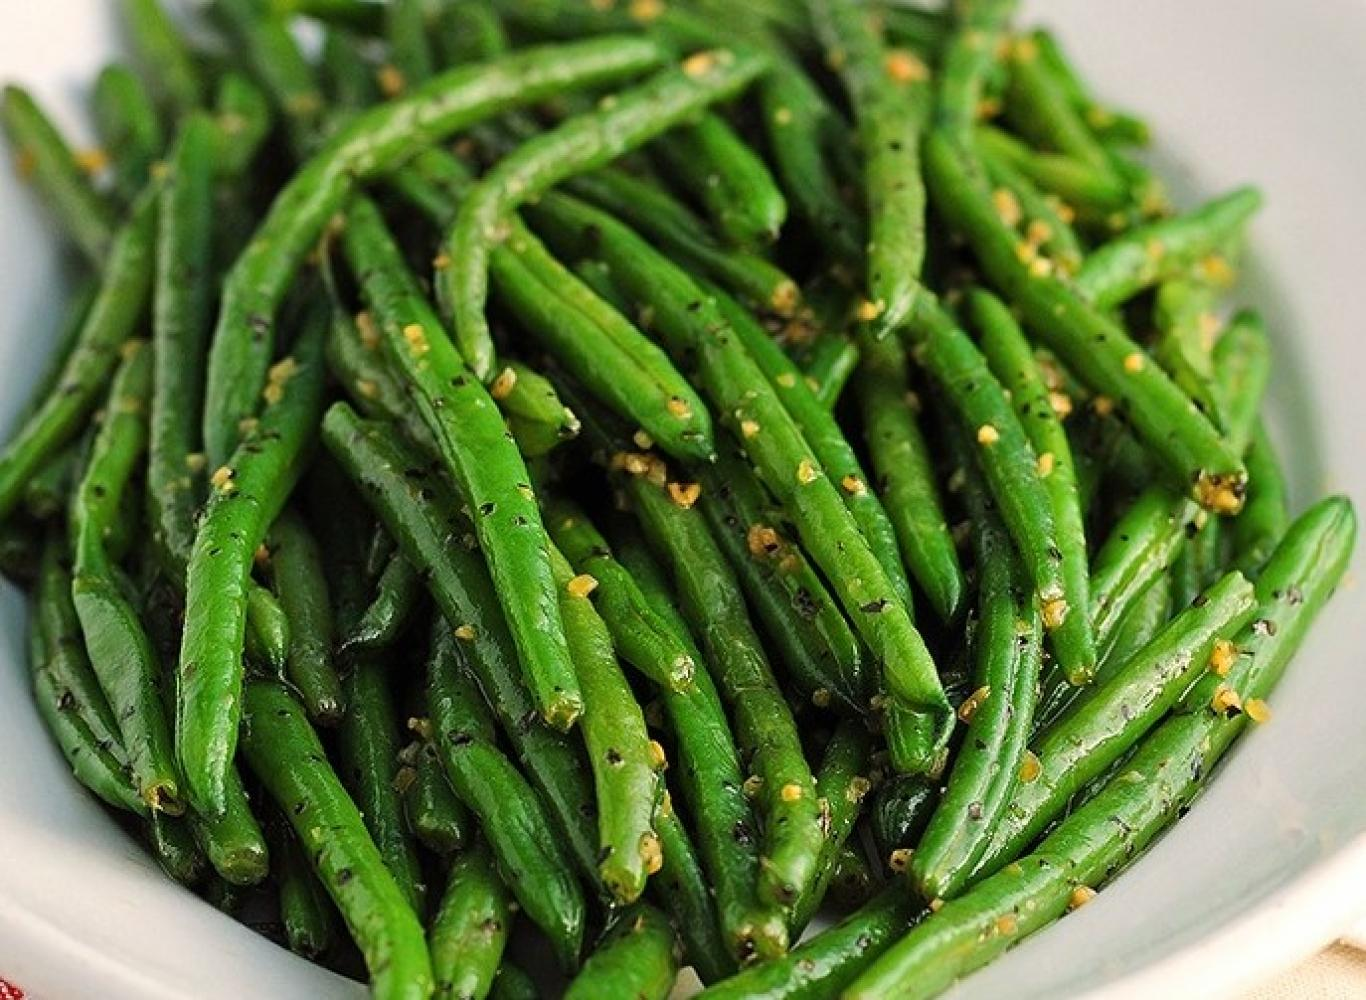 Sauteed String Beans Serve 6 to 8 People